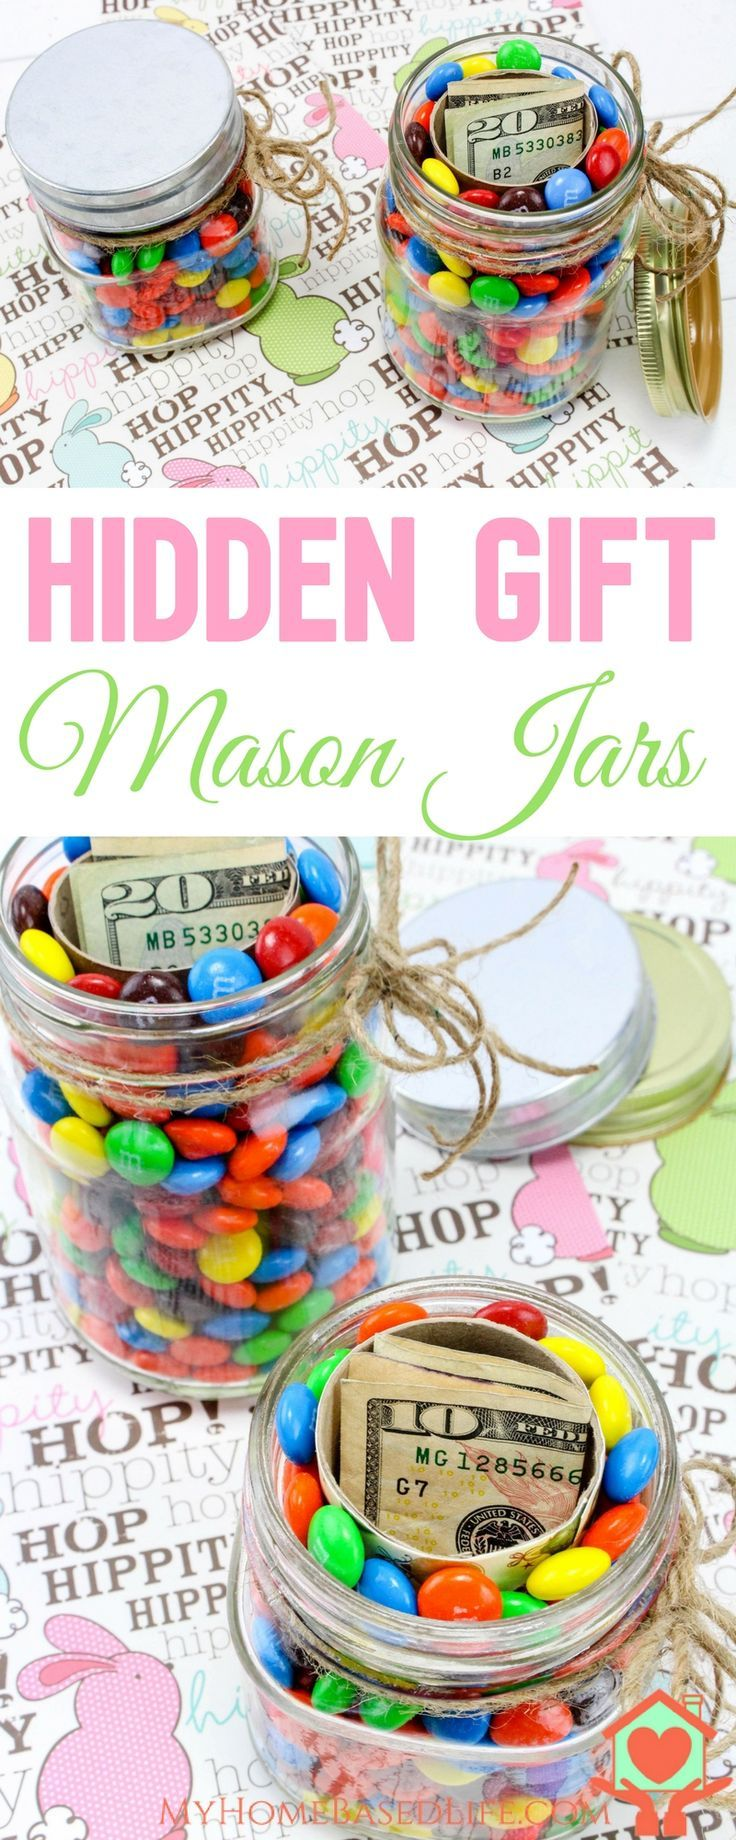 Perfect Gift Idea for all ages!  Hidden Gifts In a jar!  #eastergift | #christmasgift | #graduationgift | #birthdaygift via @myhomebasedlife